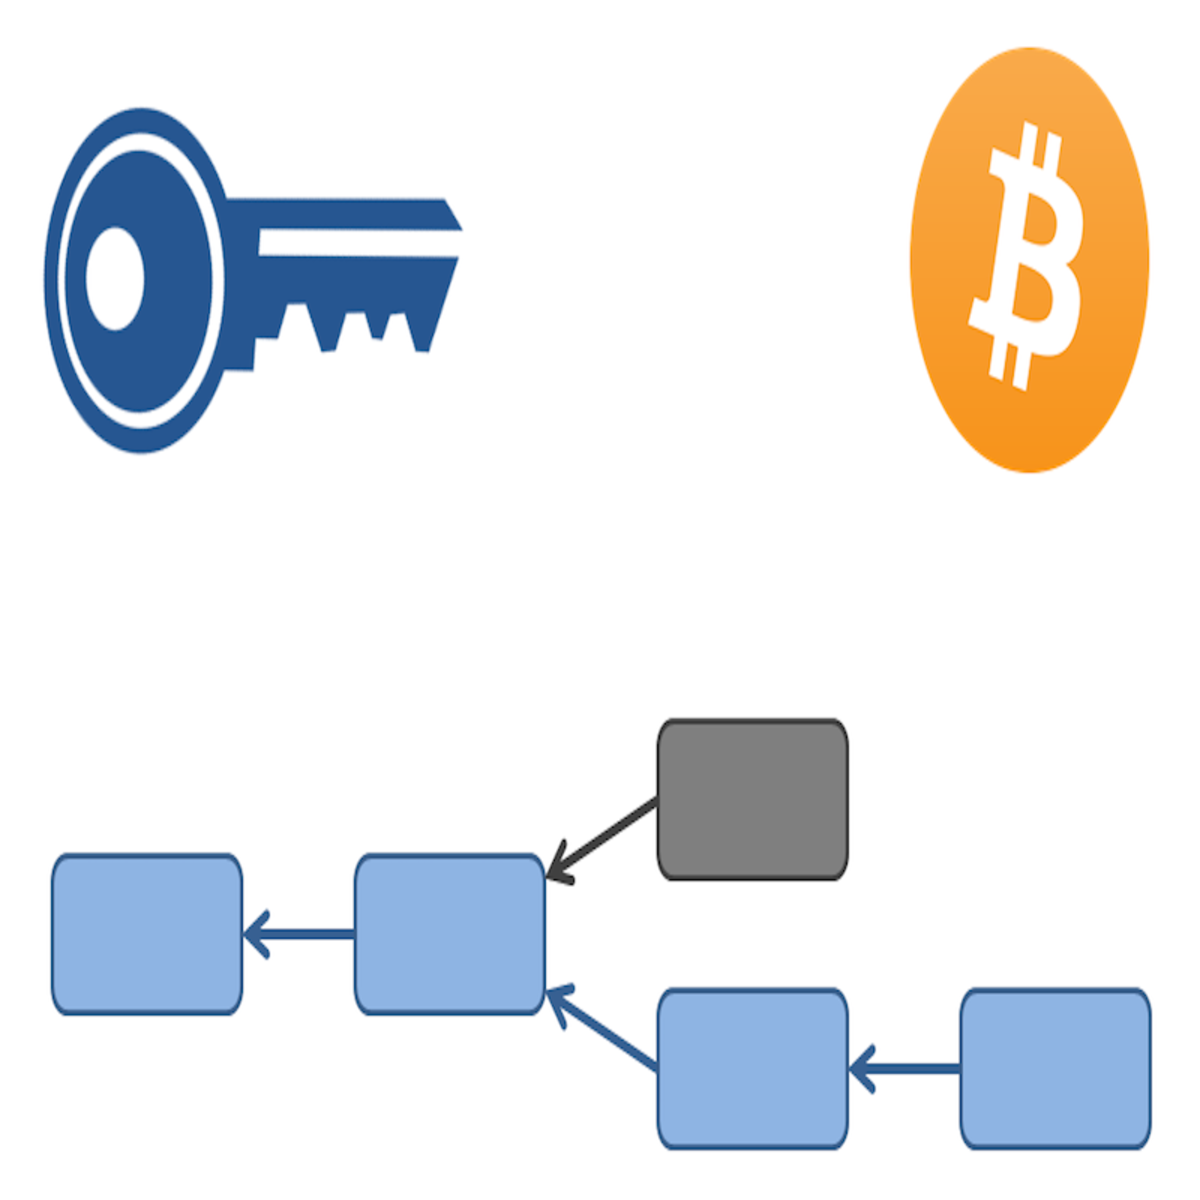 Free Online Course: Bitcoin and Cryptocurrency Technologies from Coursera